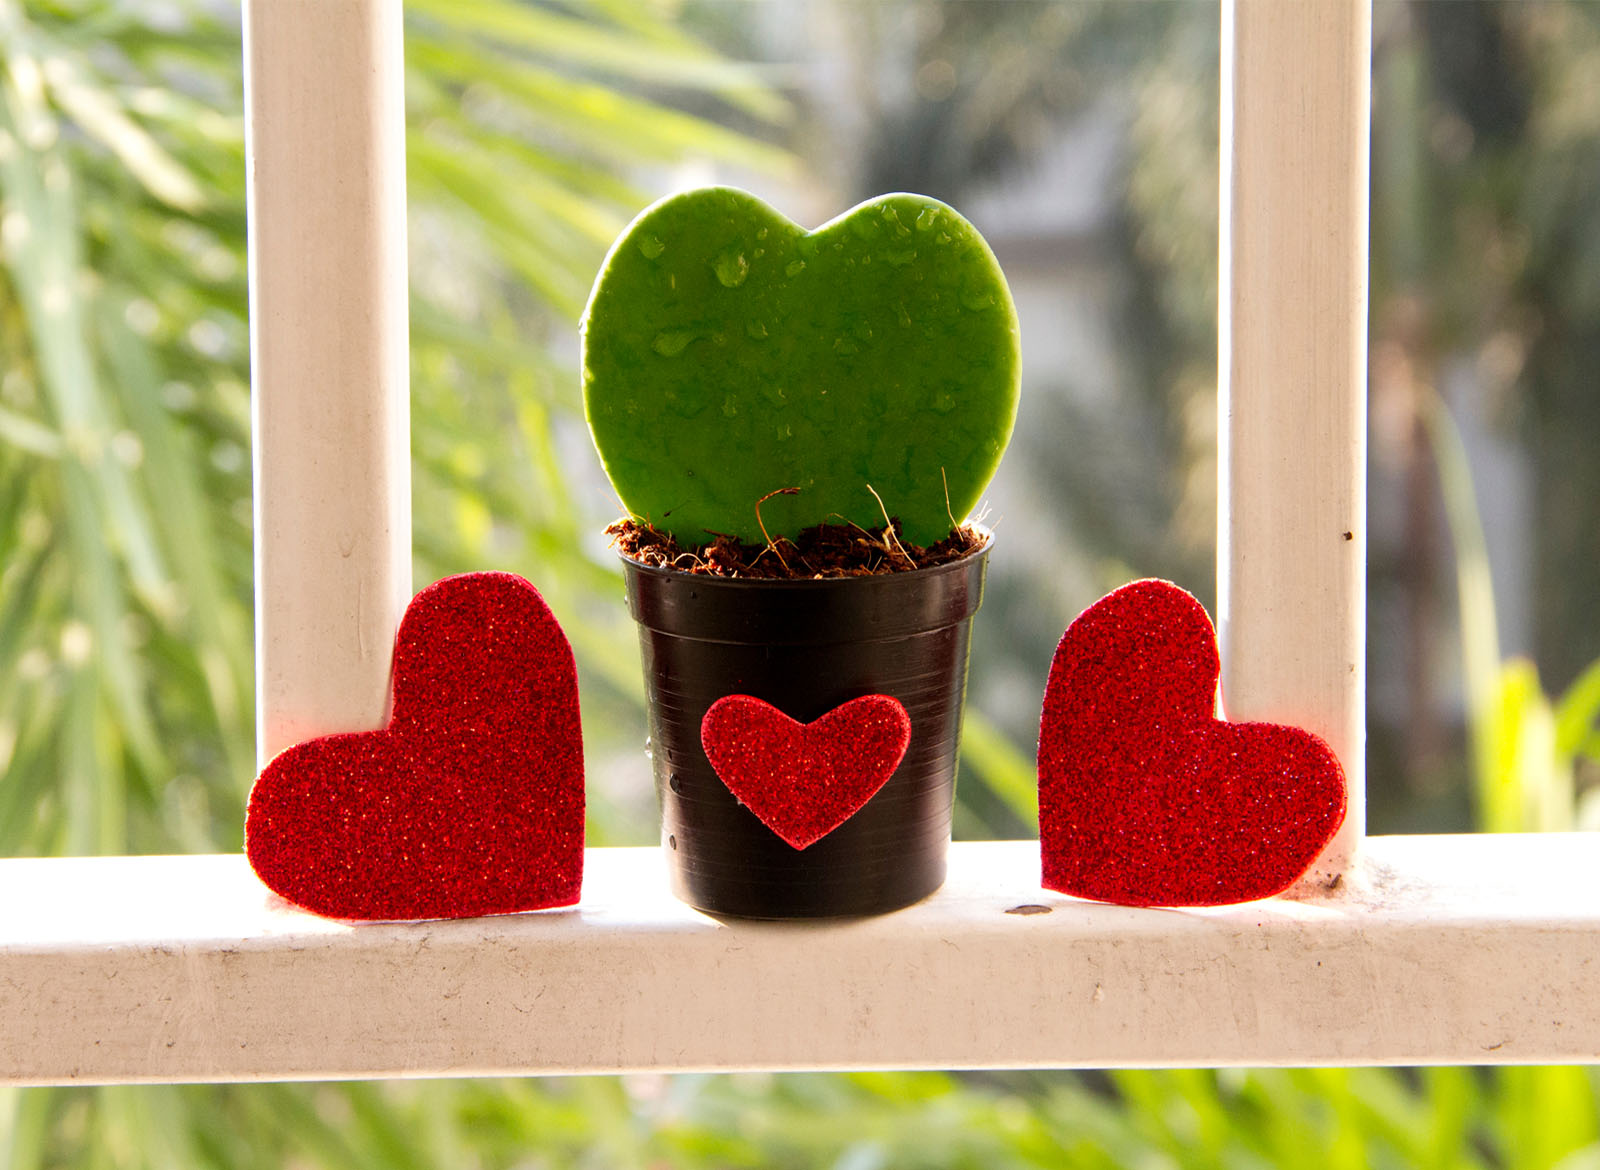 Our Top 5 Most Romantic Houseplants to Give as Gifts